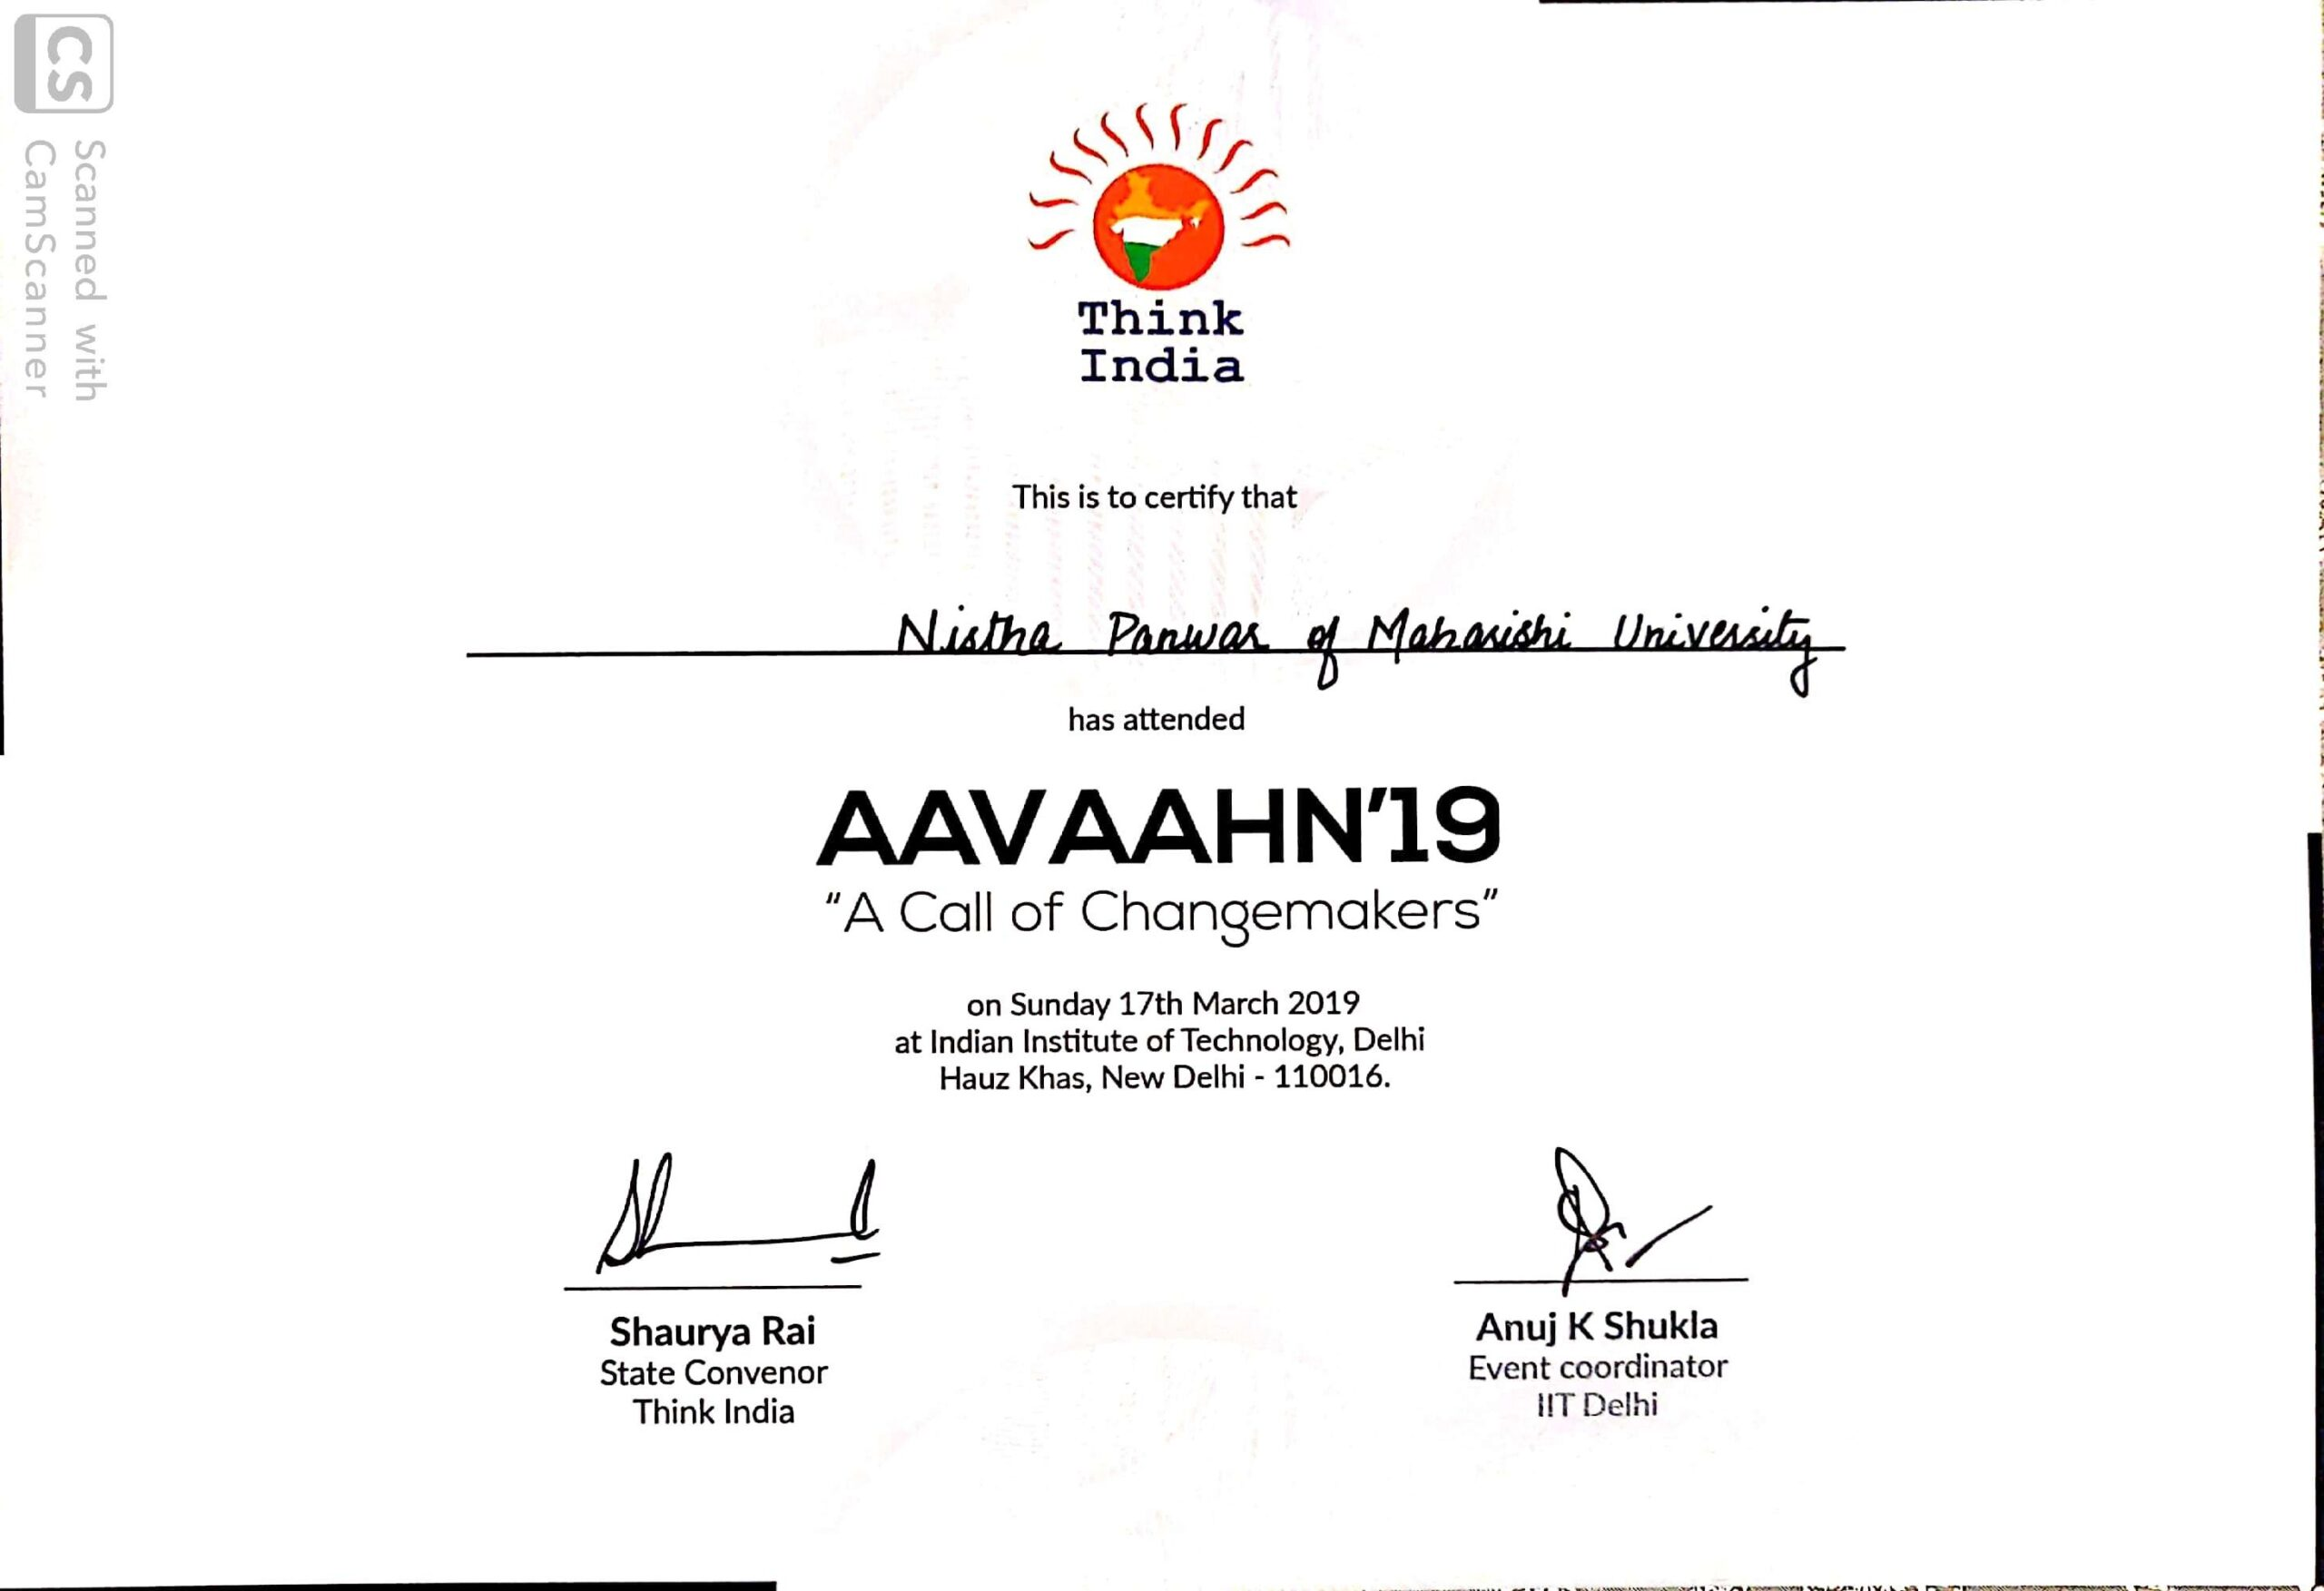 MUIT Noida: Law Student Certificate - Think India Certificate AAVAAHN'19